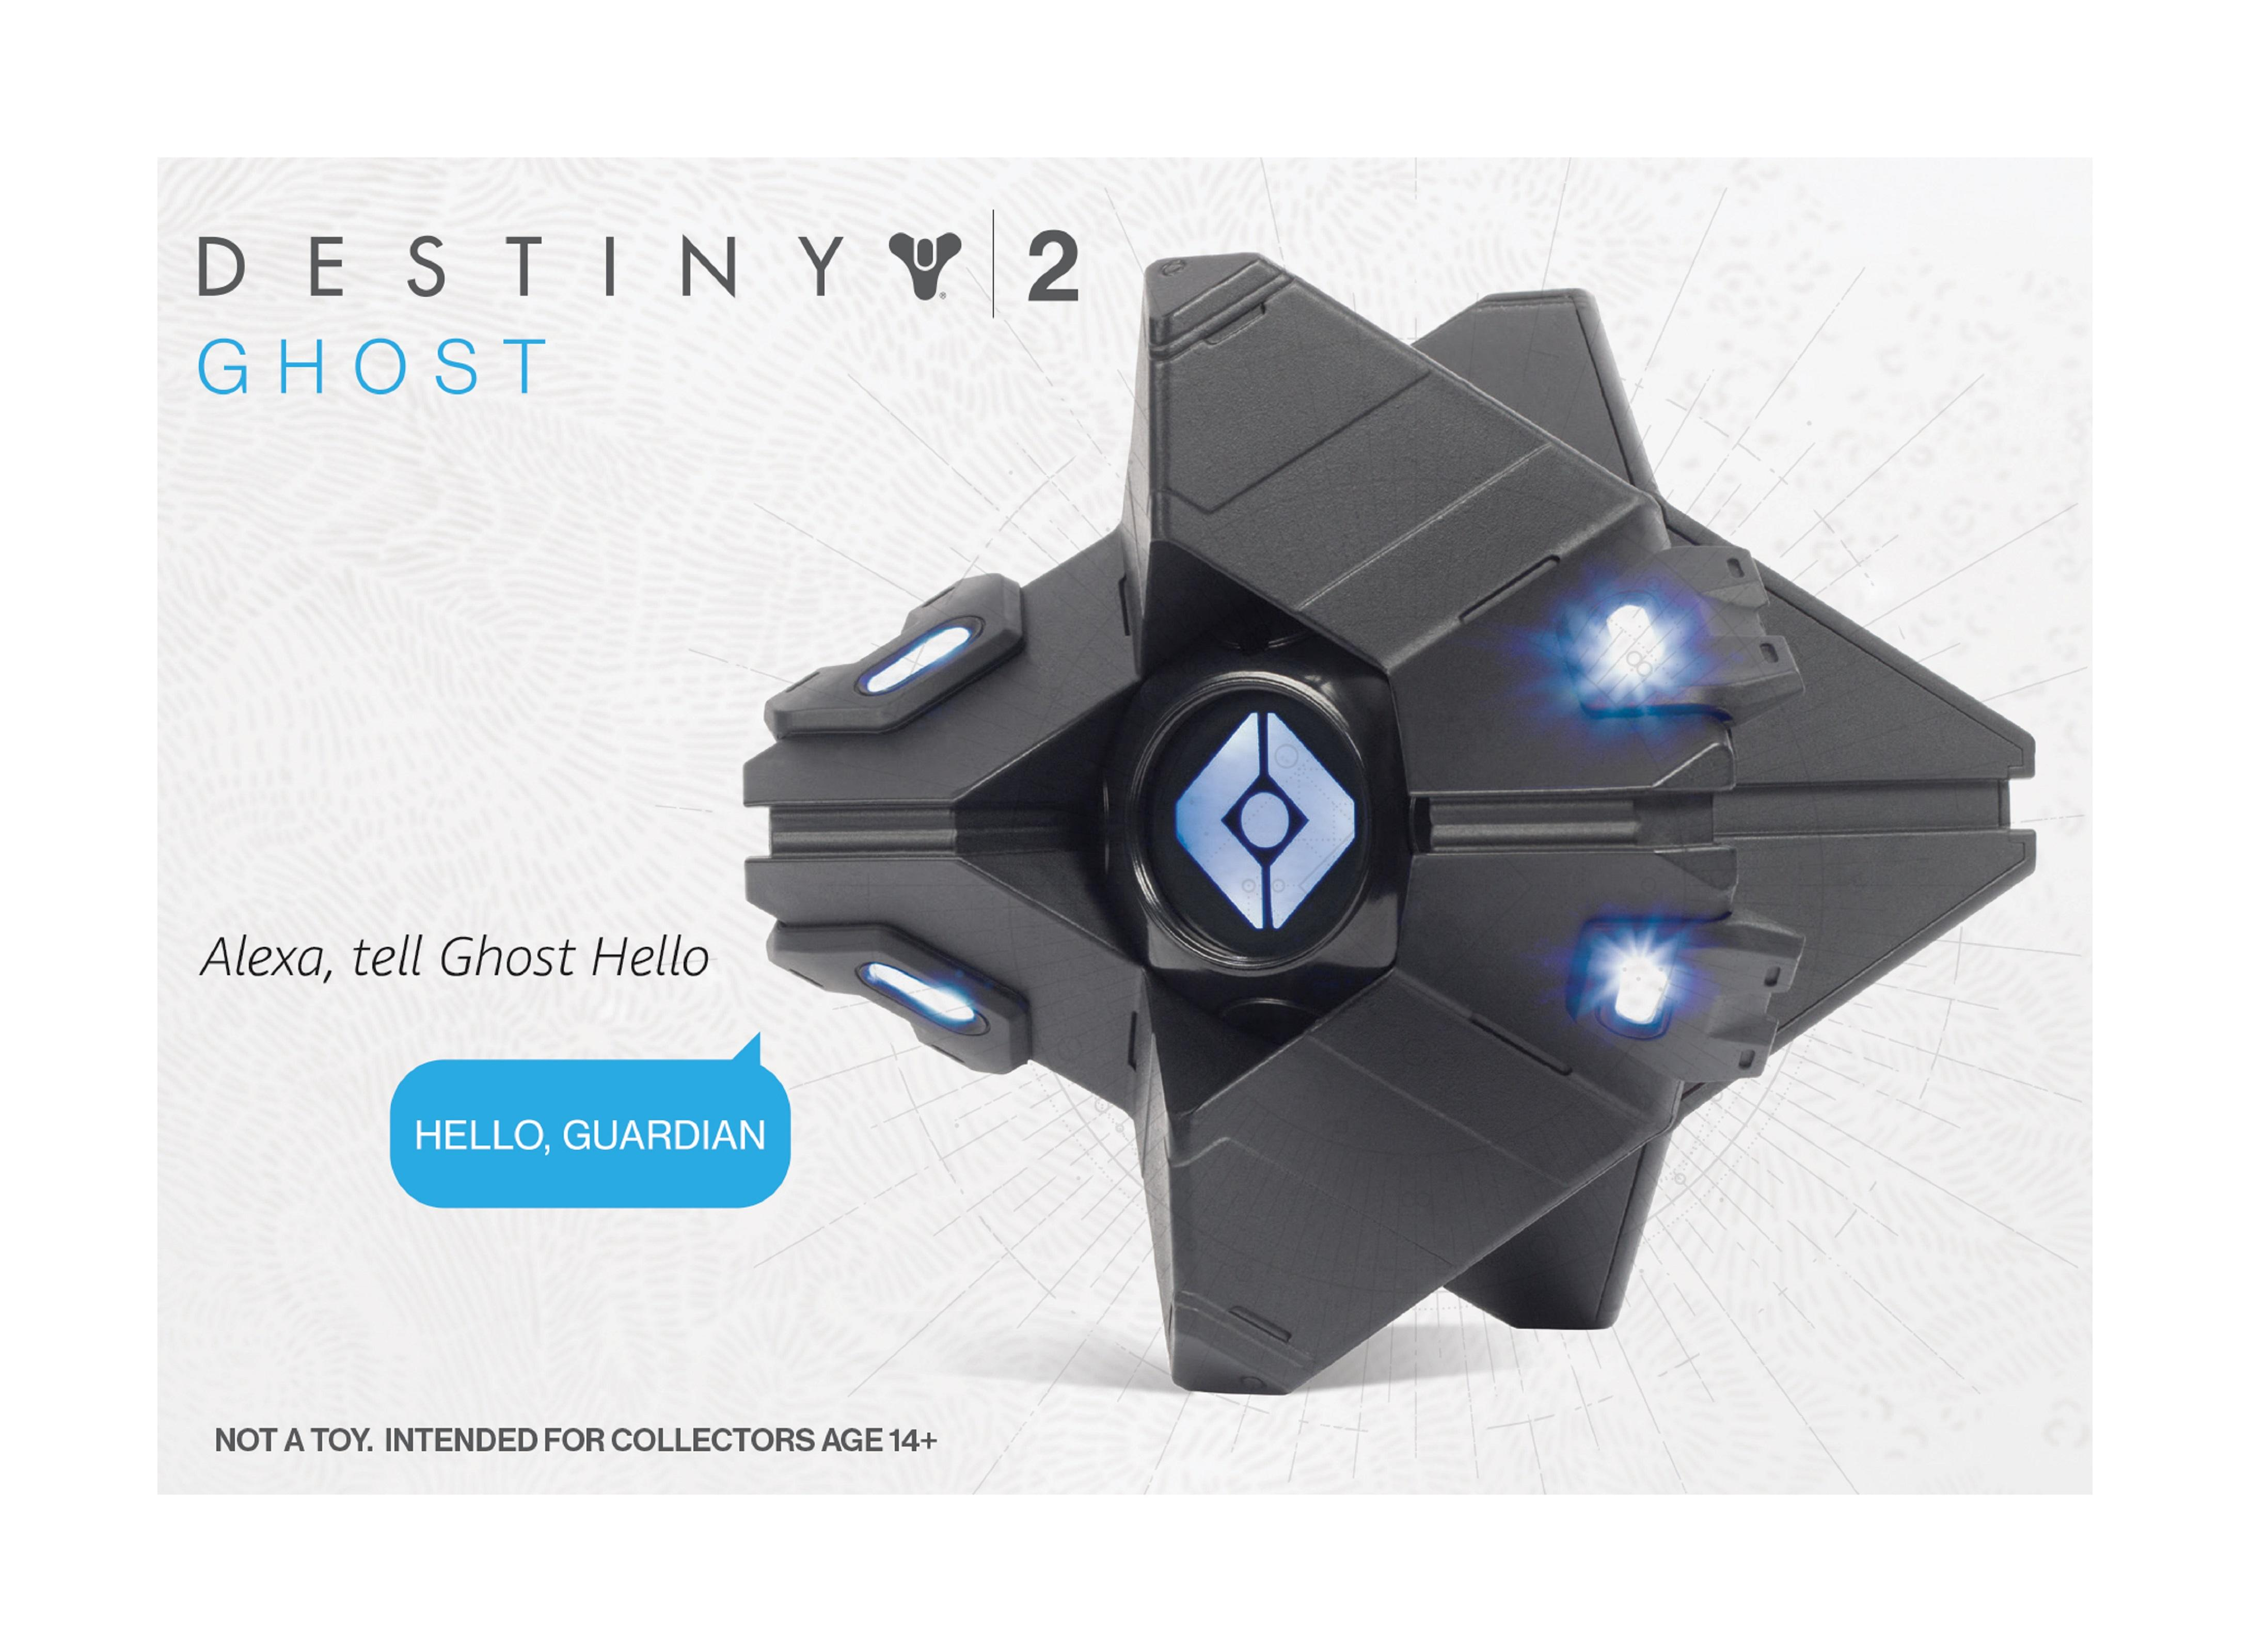 Limited Edition Destiny 2 Ghost - Collectible: Amazon co uk: PC